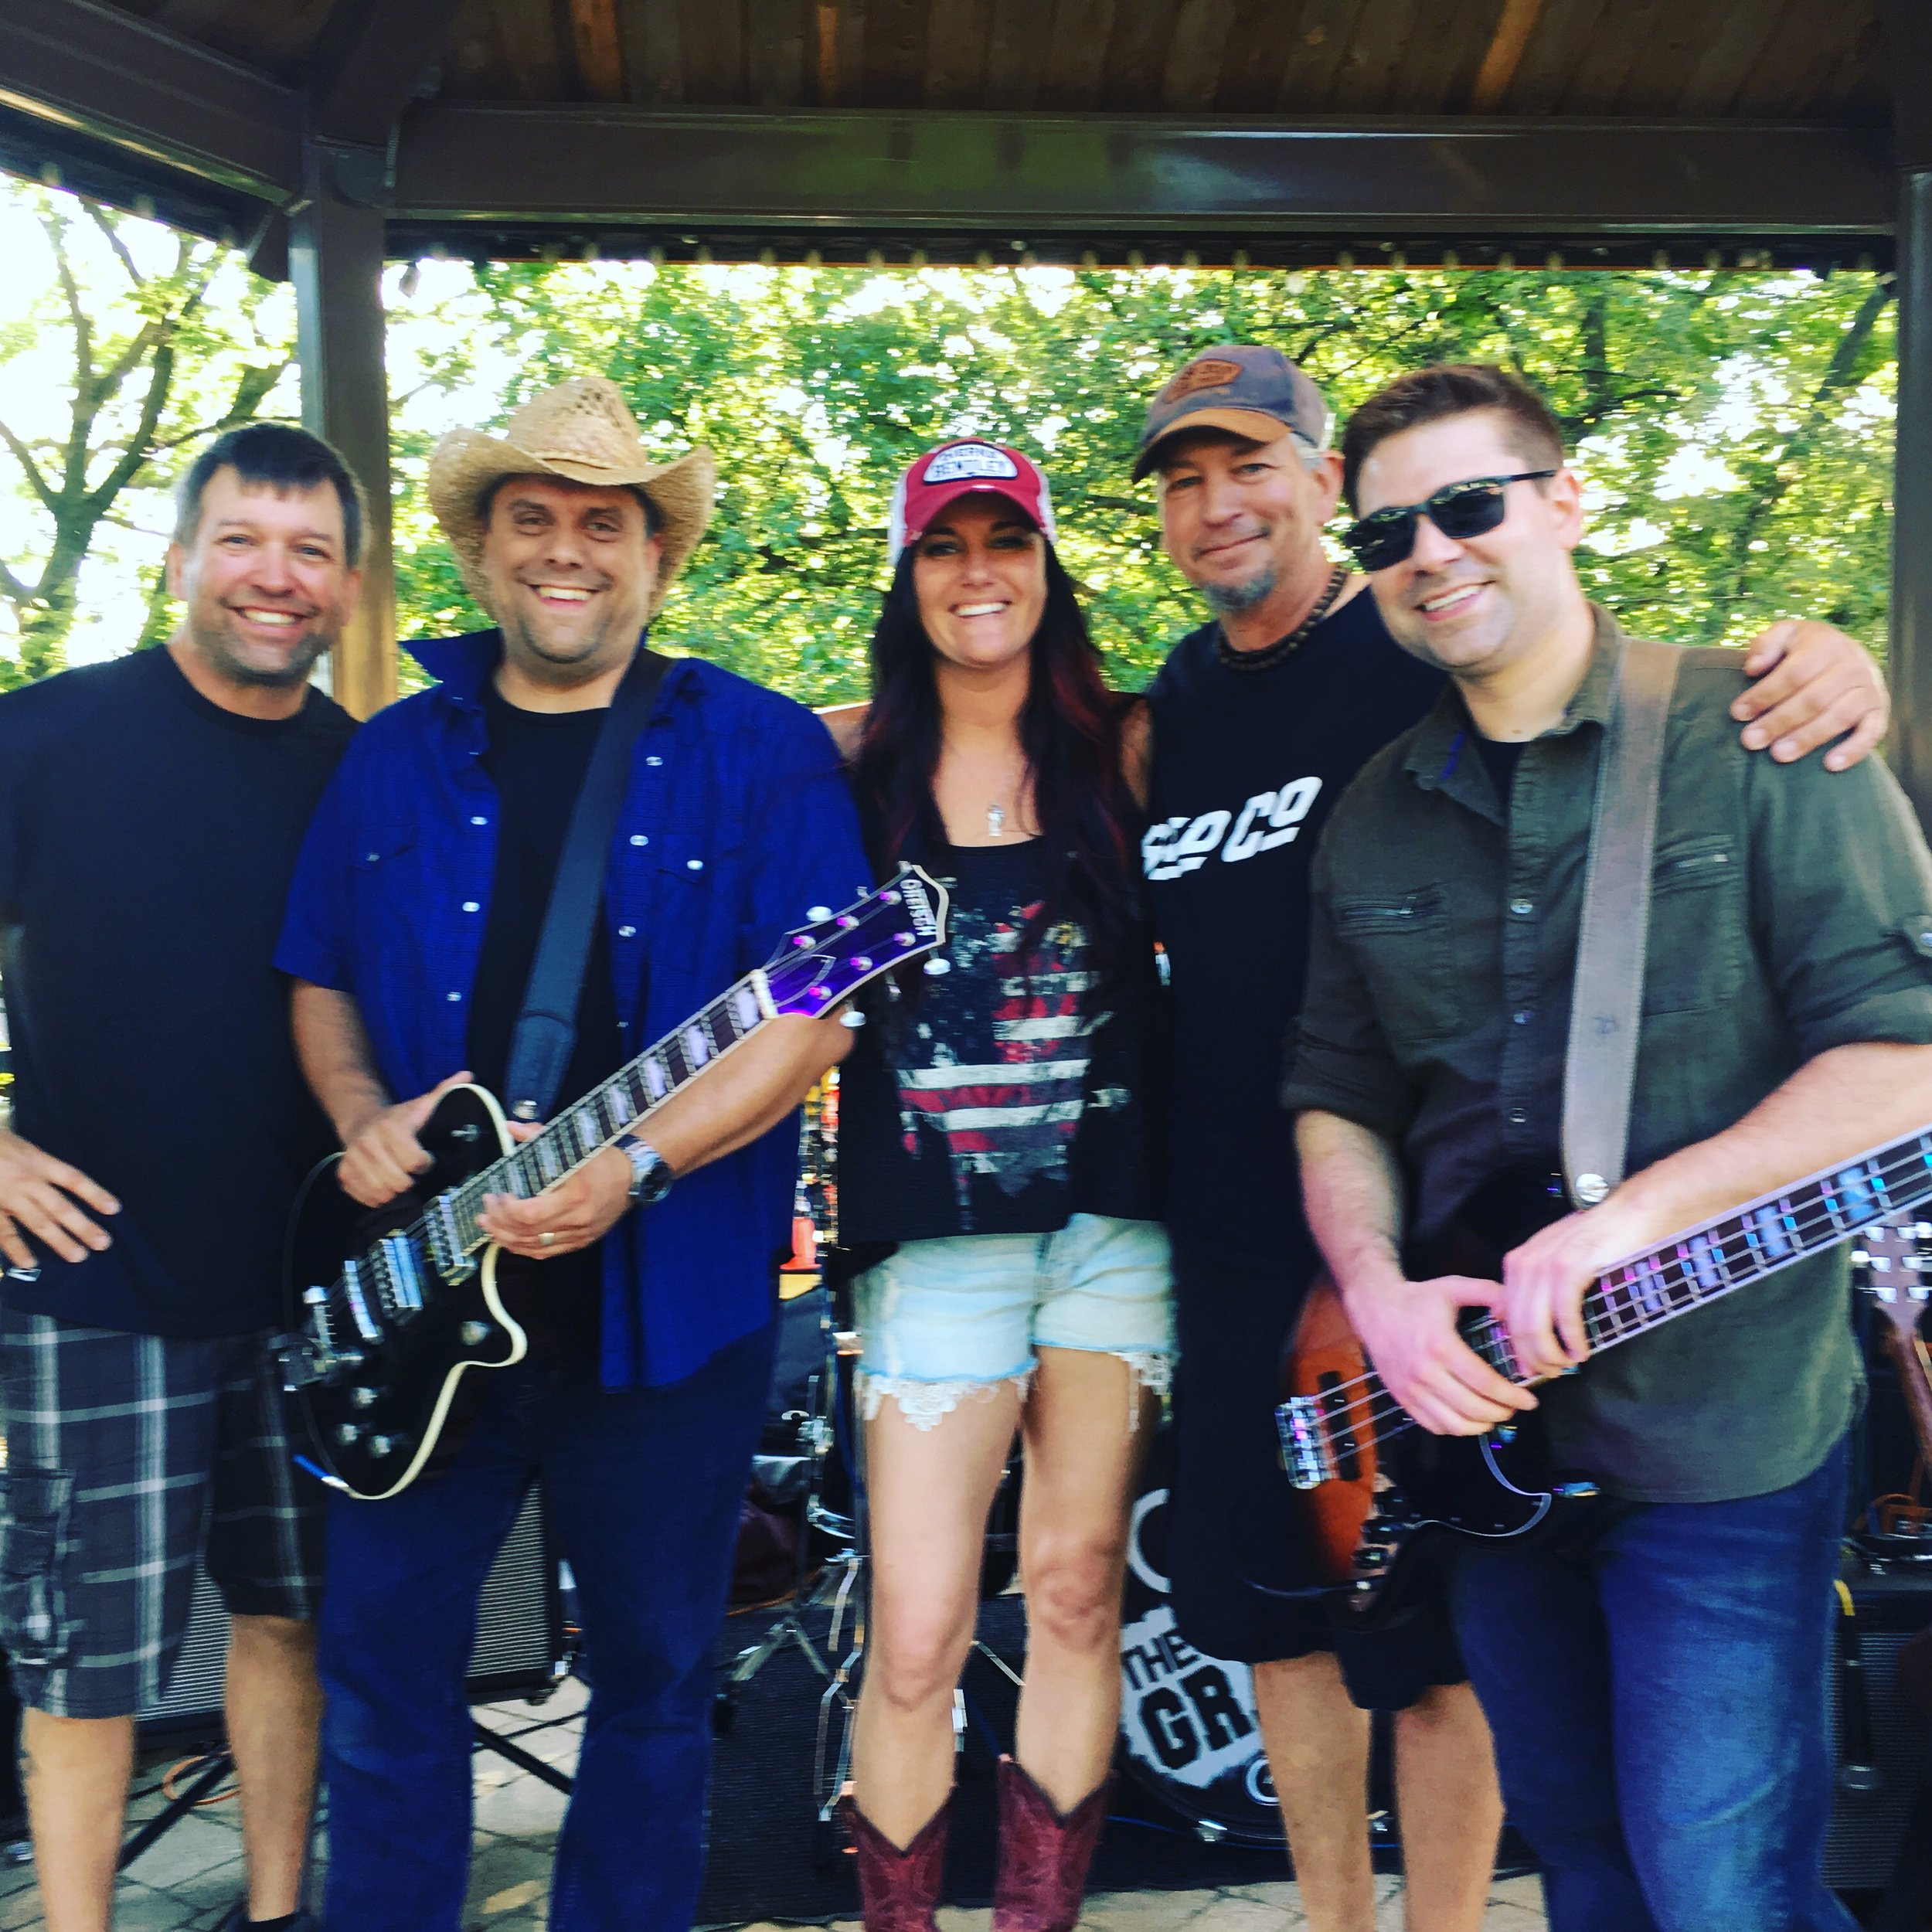 C. K. and The Gray at Cruisin Into Lockport 2019